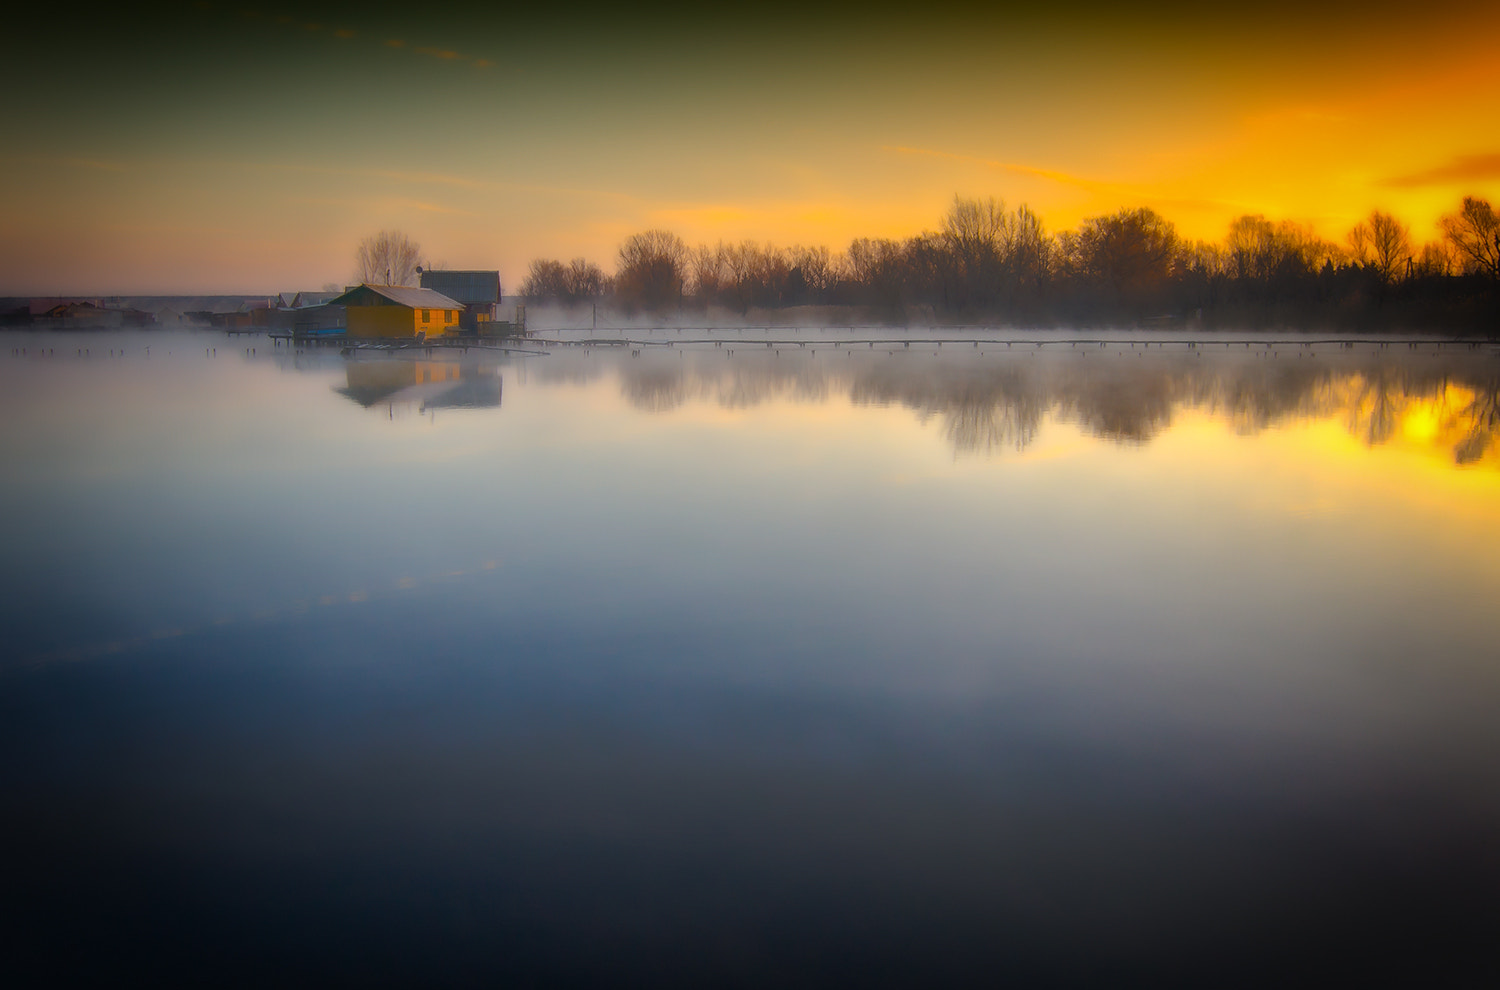 Photograph dawning by Andy 58 on 500px